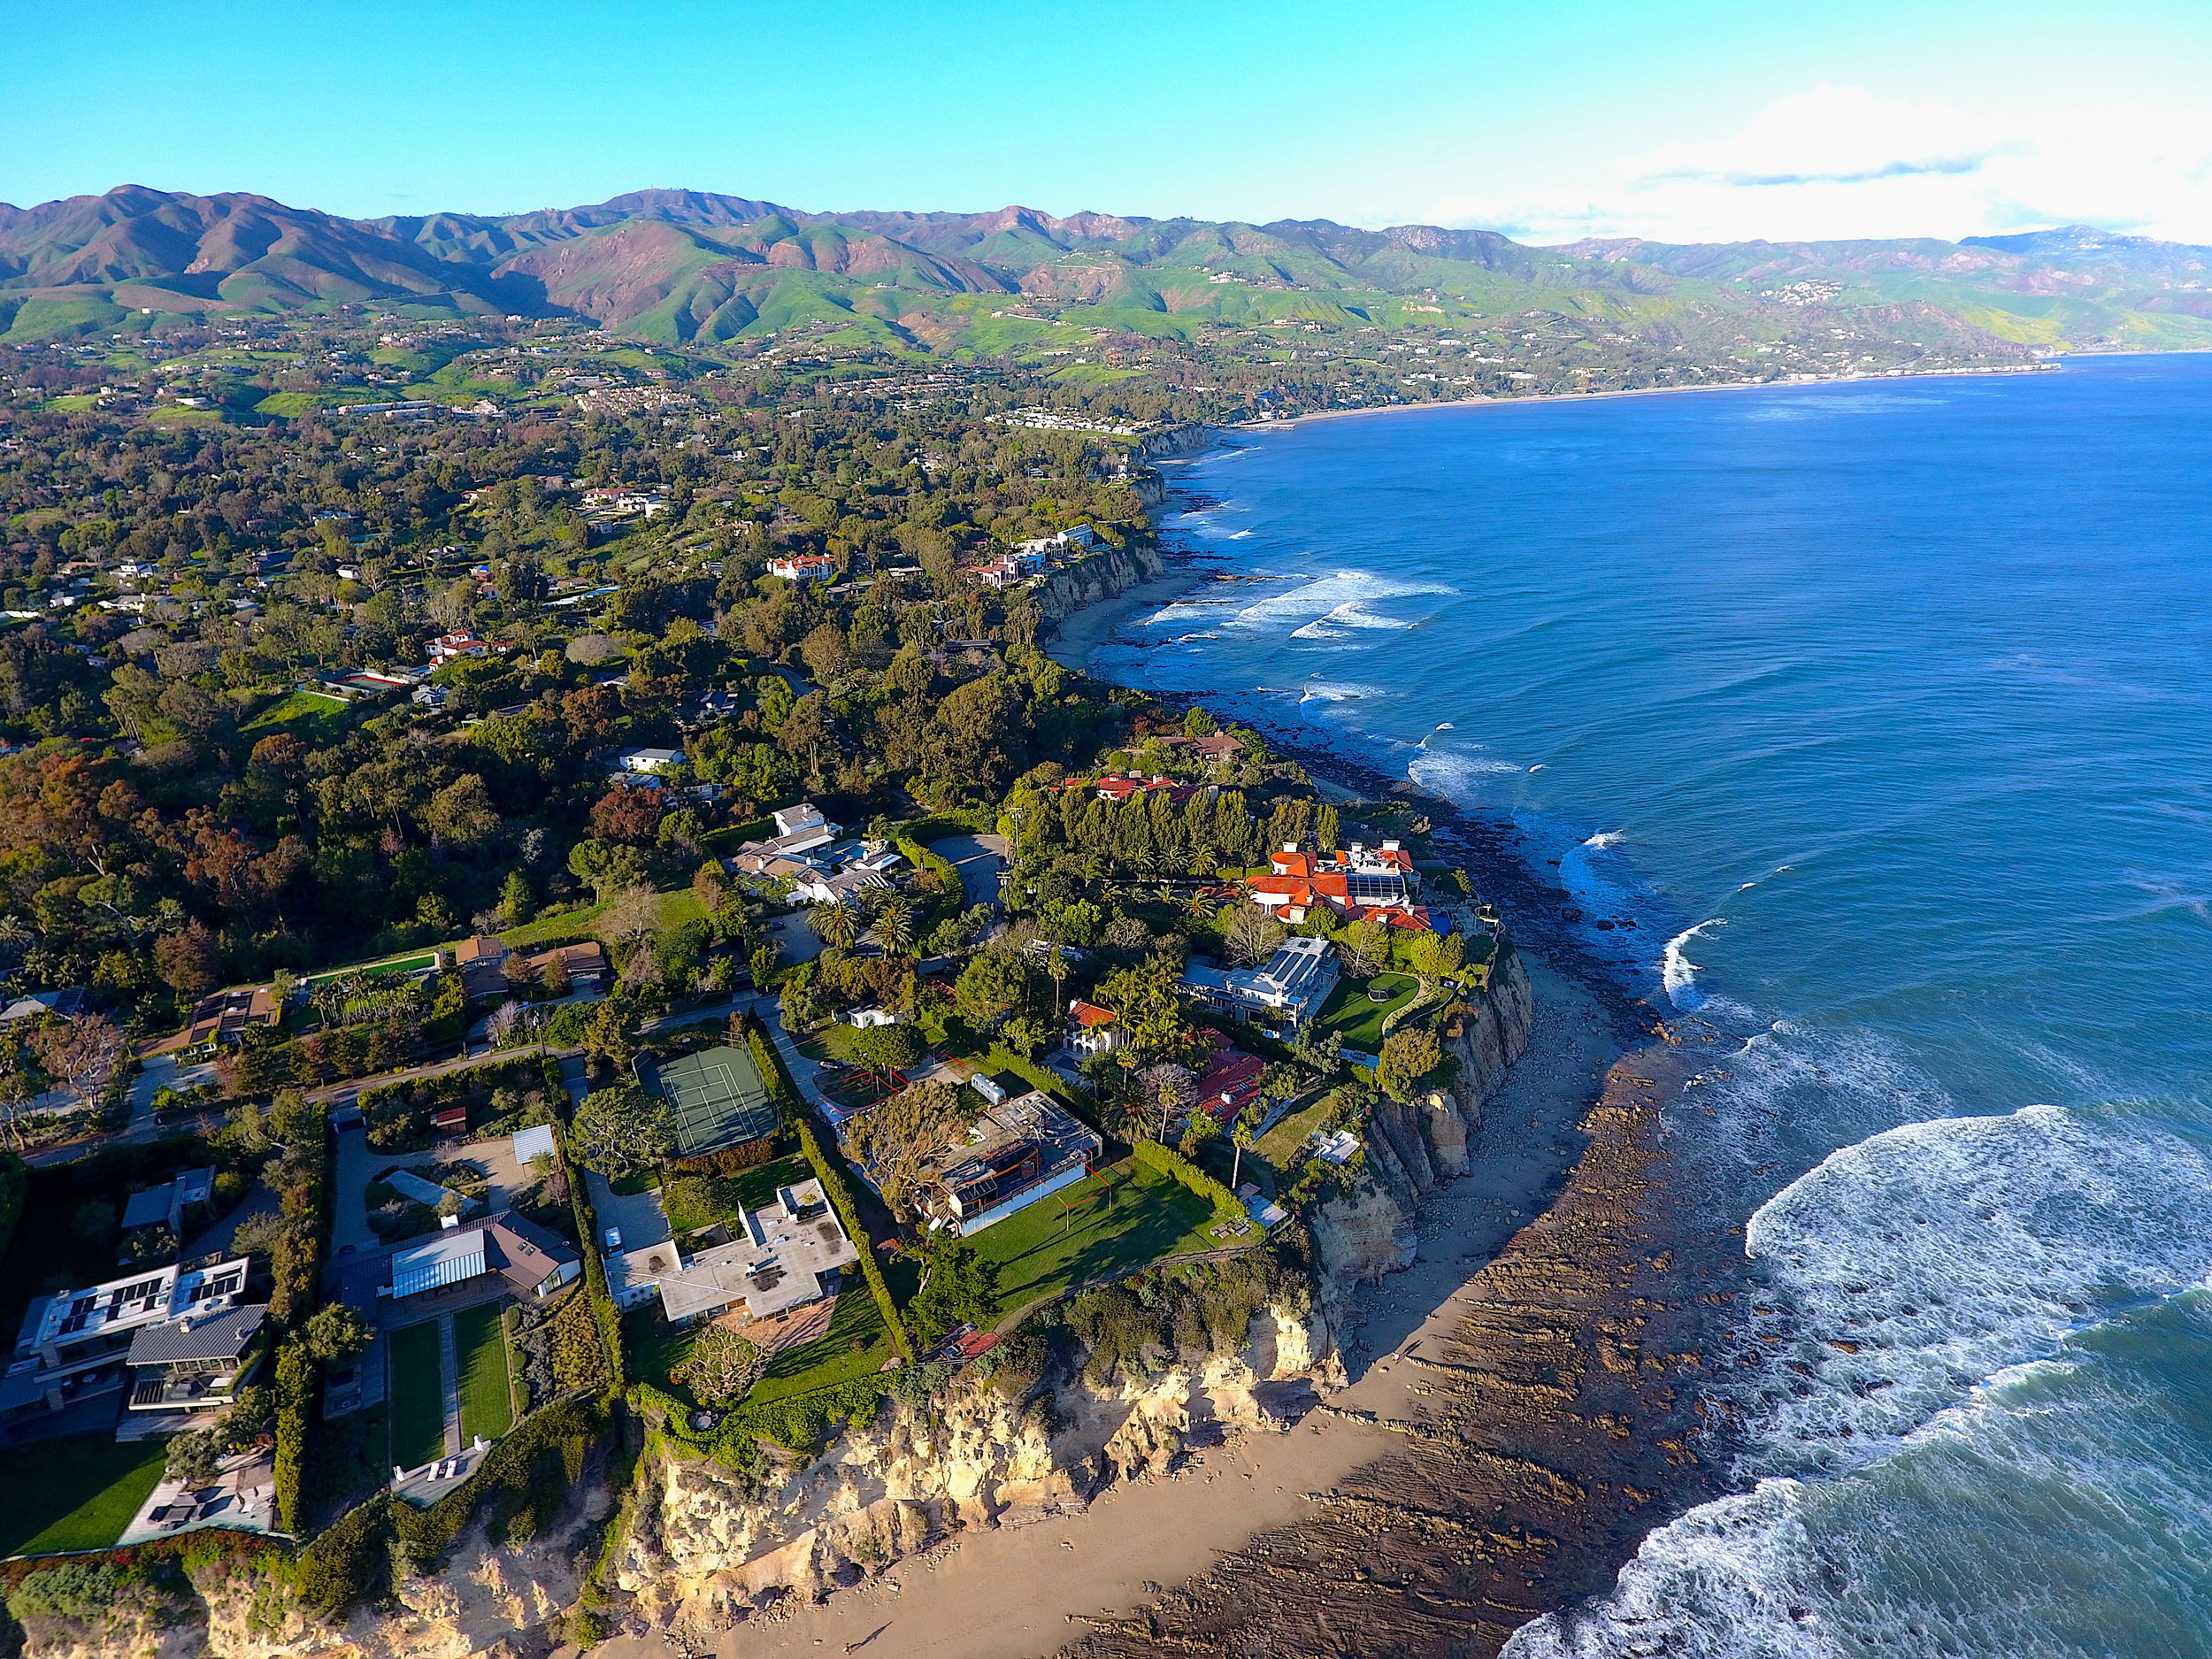 One of the most coveted features in Point Dume are the numerous private access points to Little Dume which require a resident key for entry.